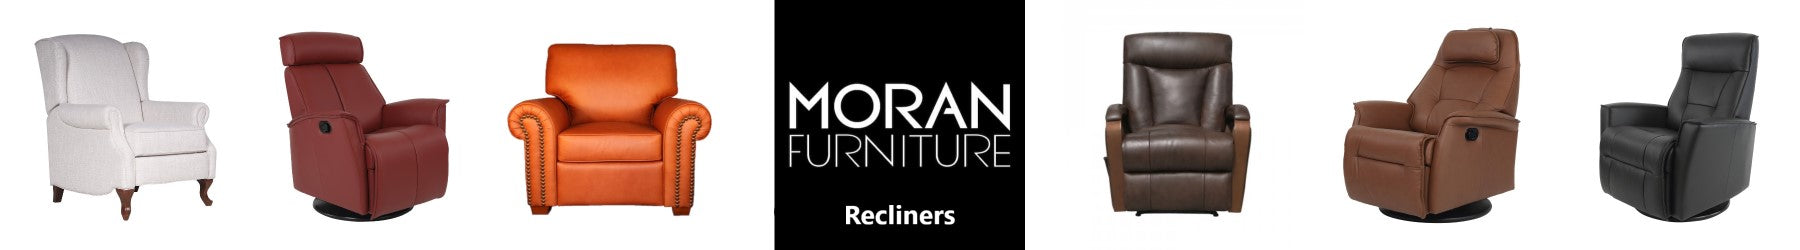 Moran Furniture Recliners and Push Back Chairs